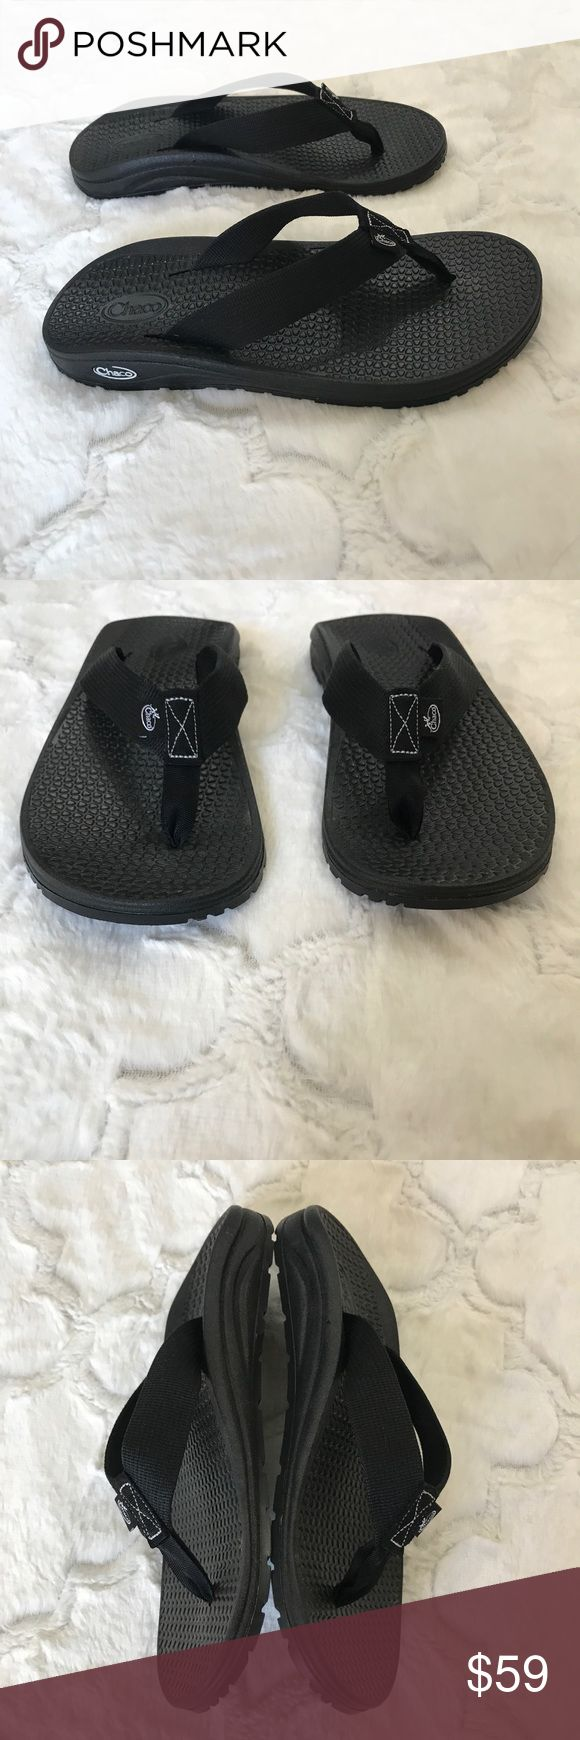 Chaco flip flops Women's 8 new black New with out tags Chaco black flip flops. No stains or tears. Perfect condition Chacos Shoes Sandals